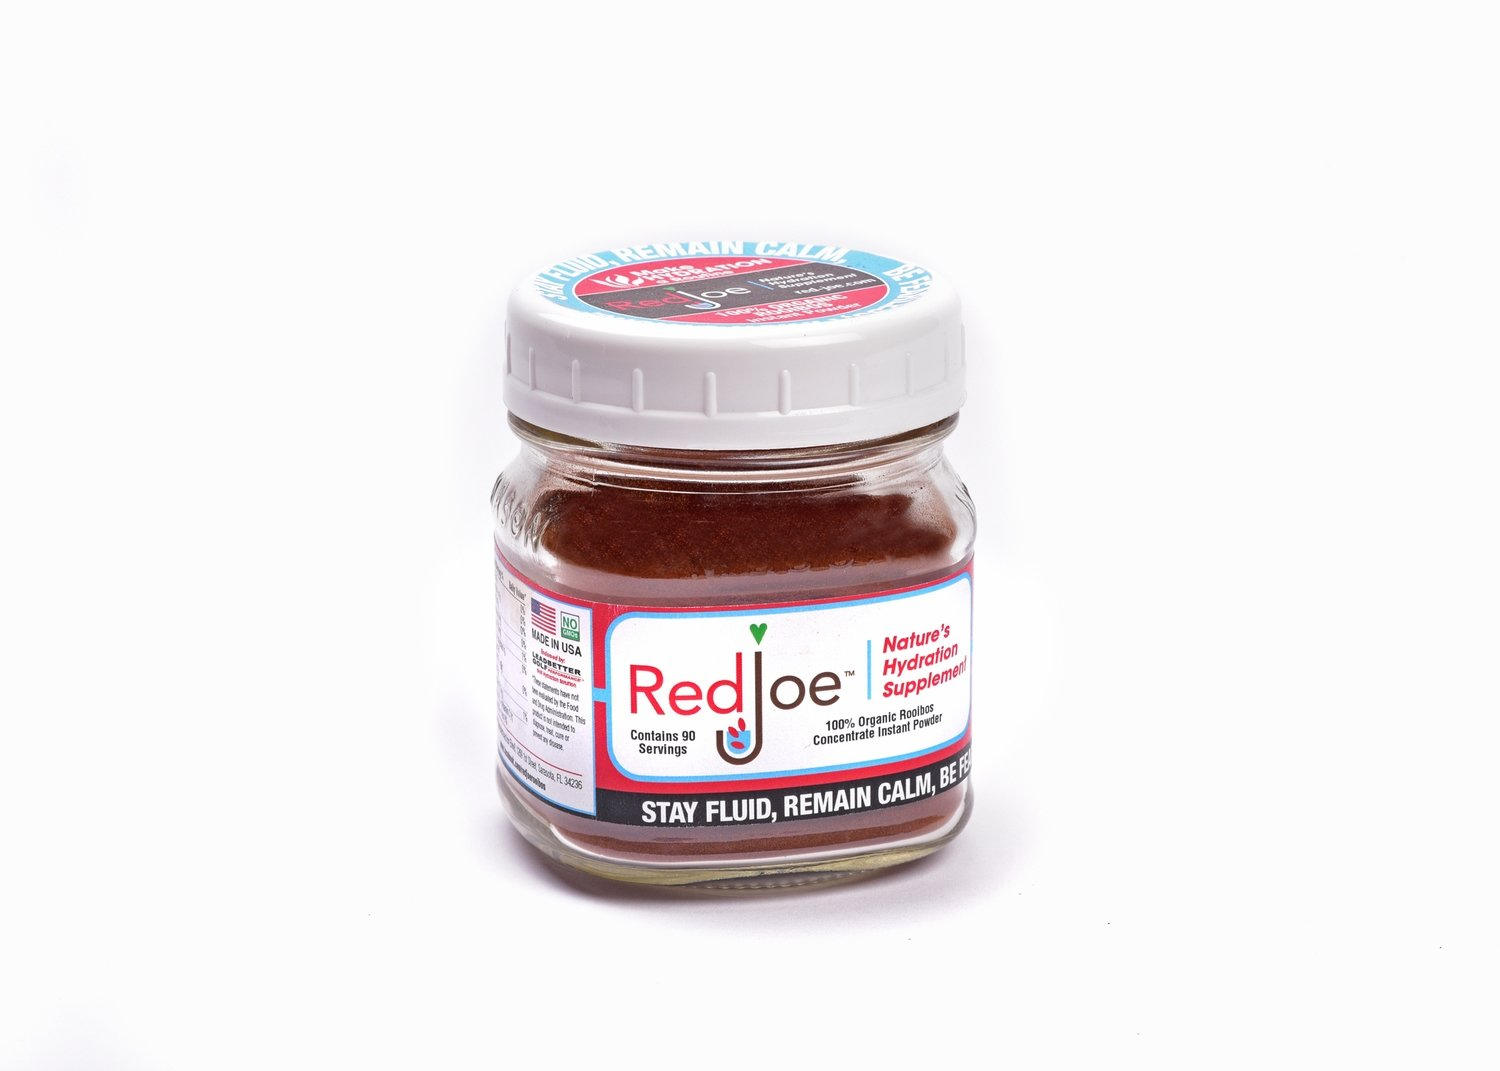 90 serving jar of RedJoe Powder